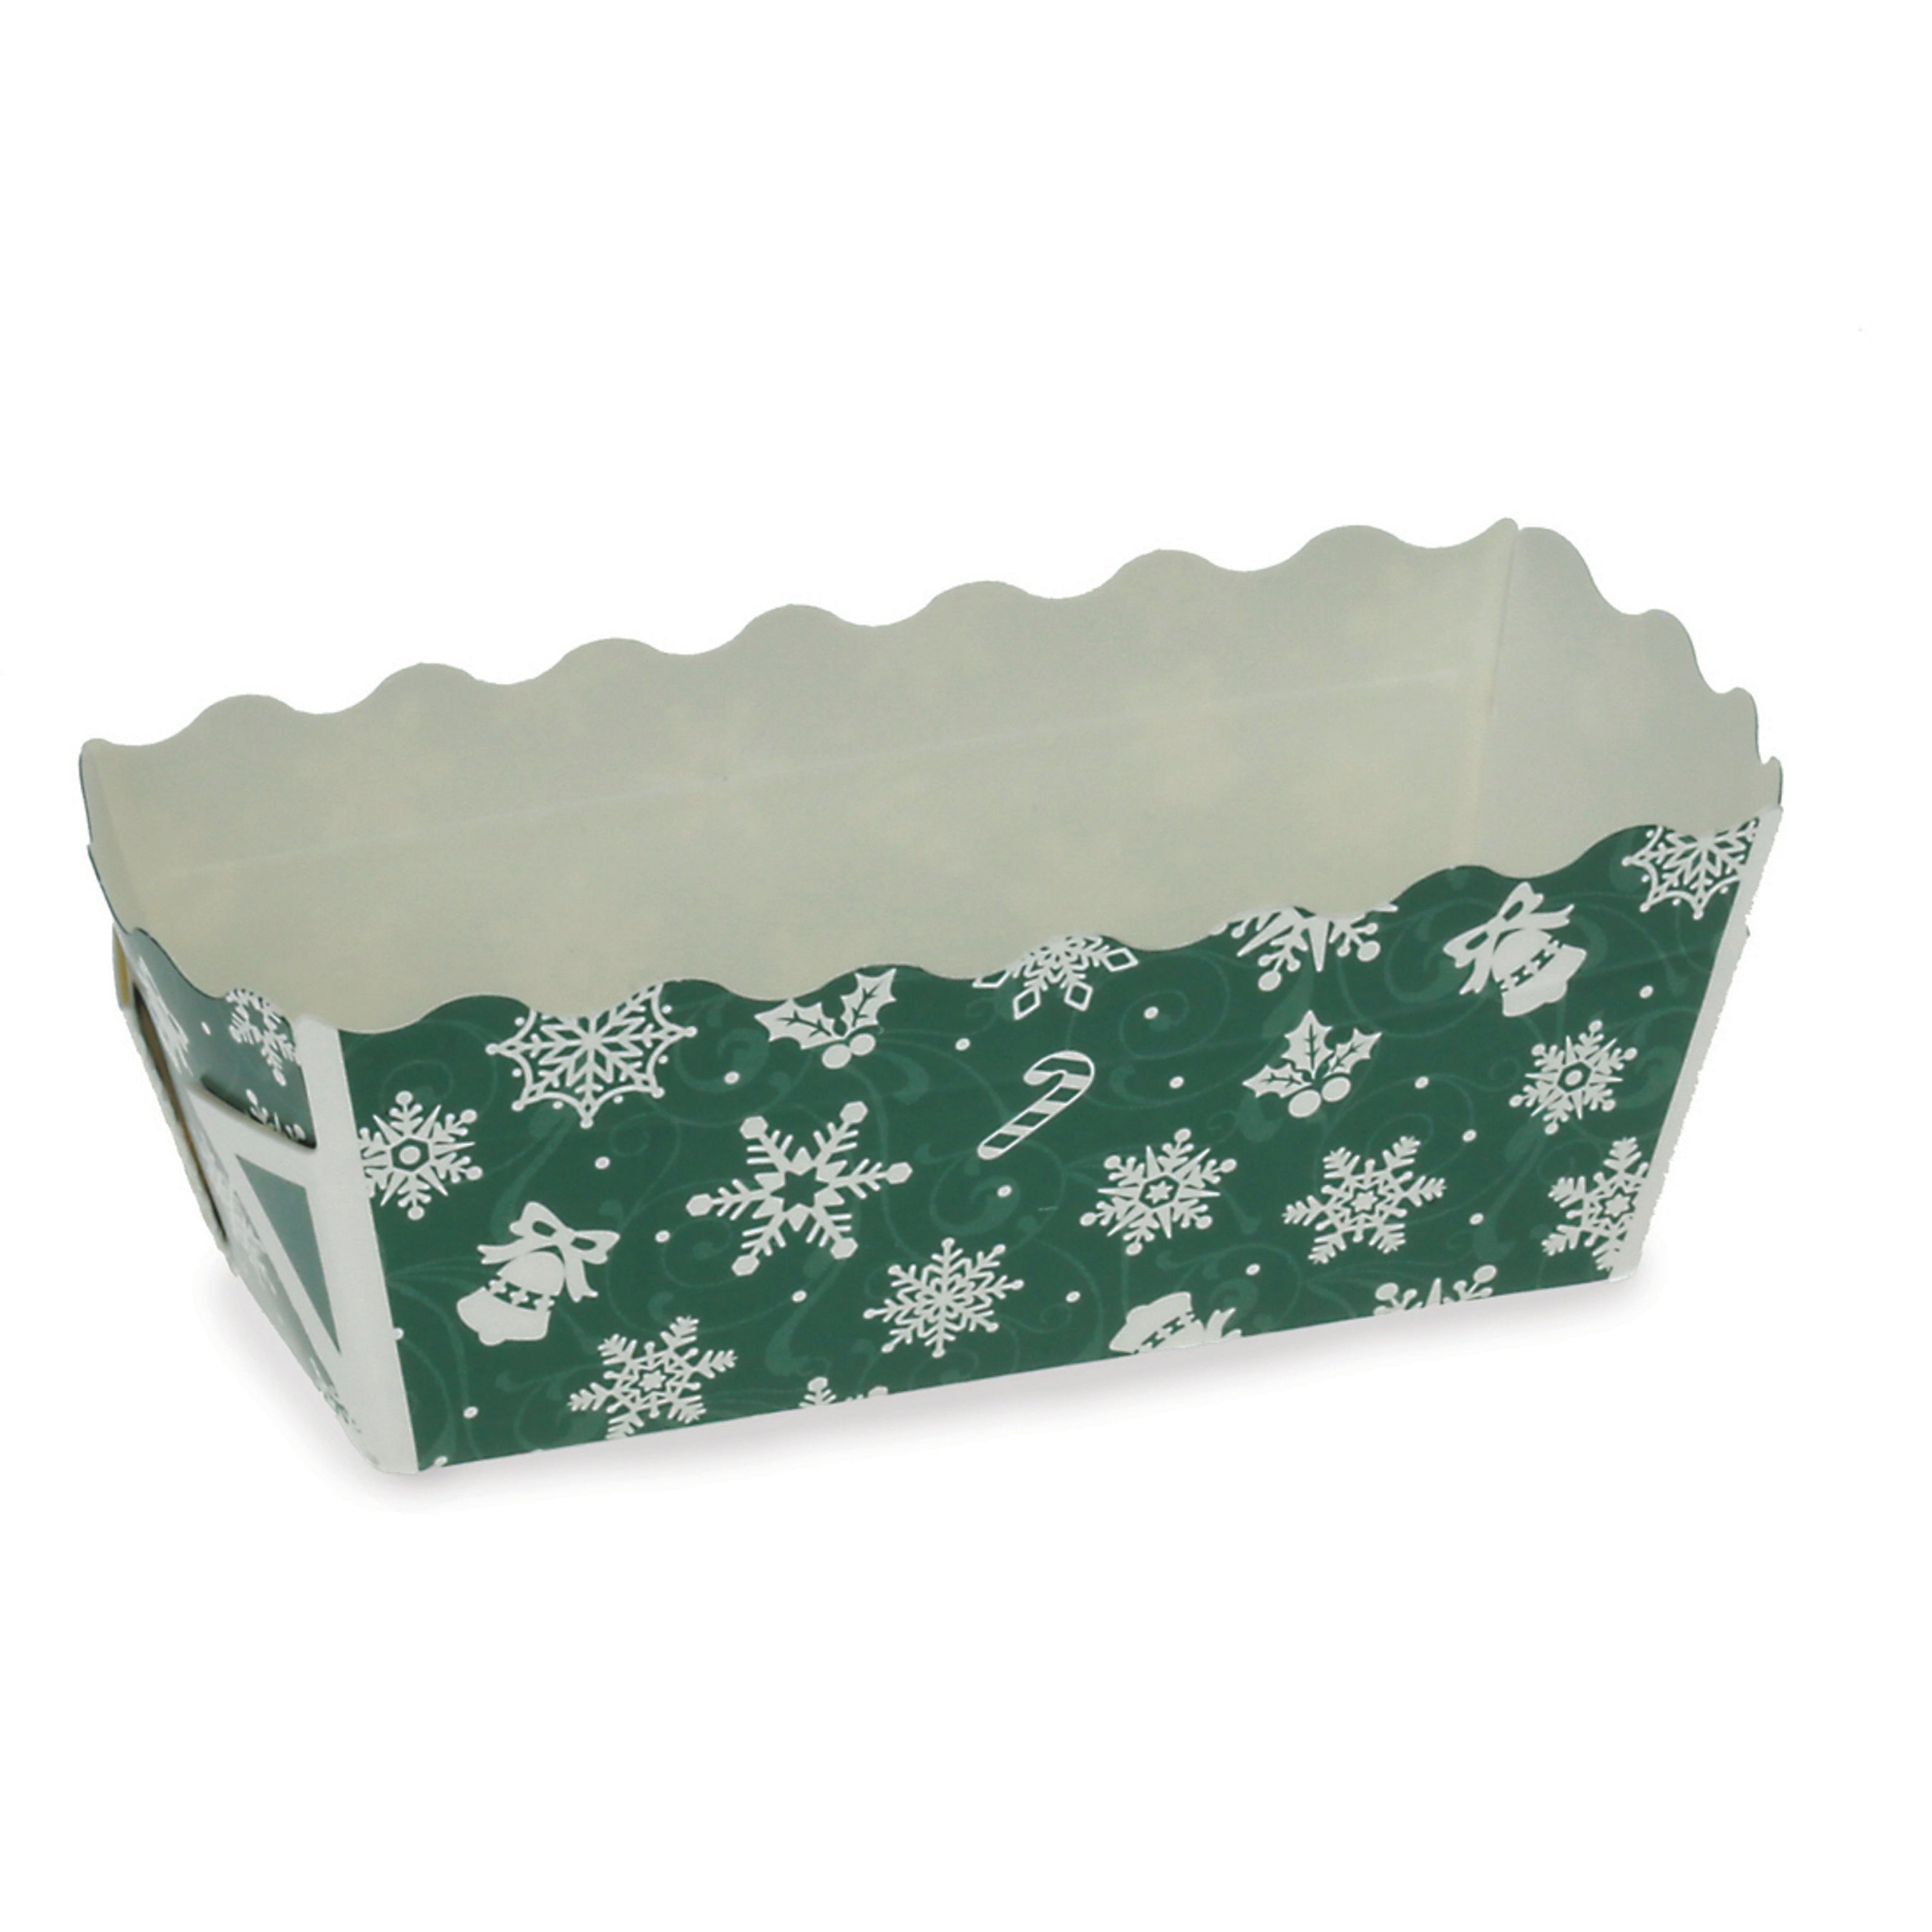 "Assortment Sets, 3.2"" Mini Loaf Set, Green Snowflake - Welcome Home Brands"